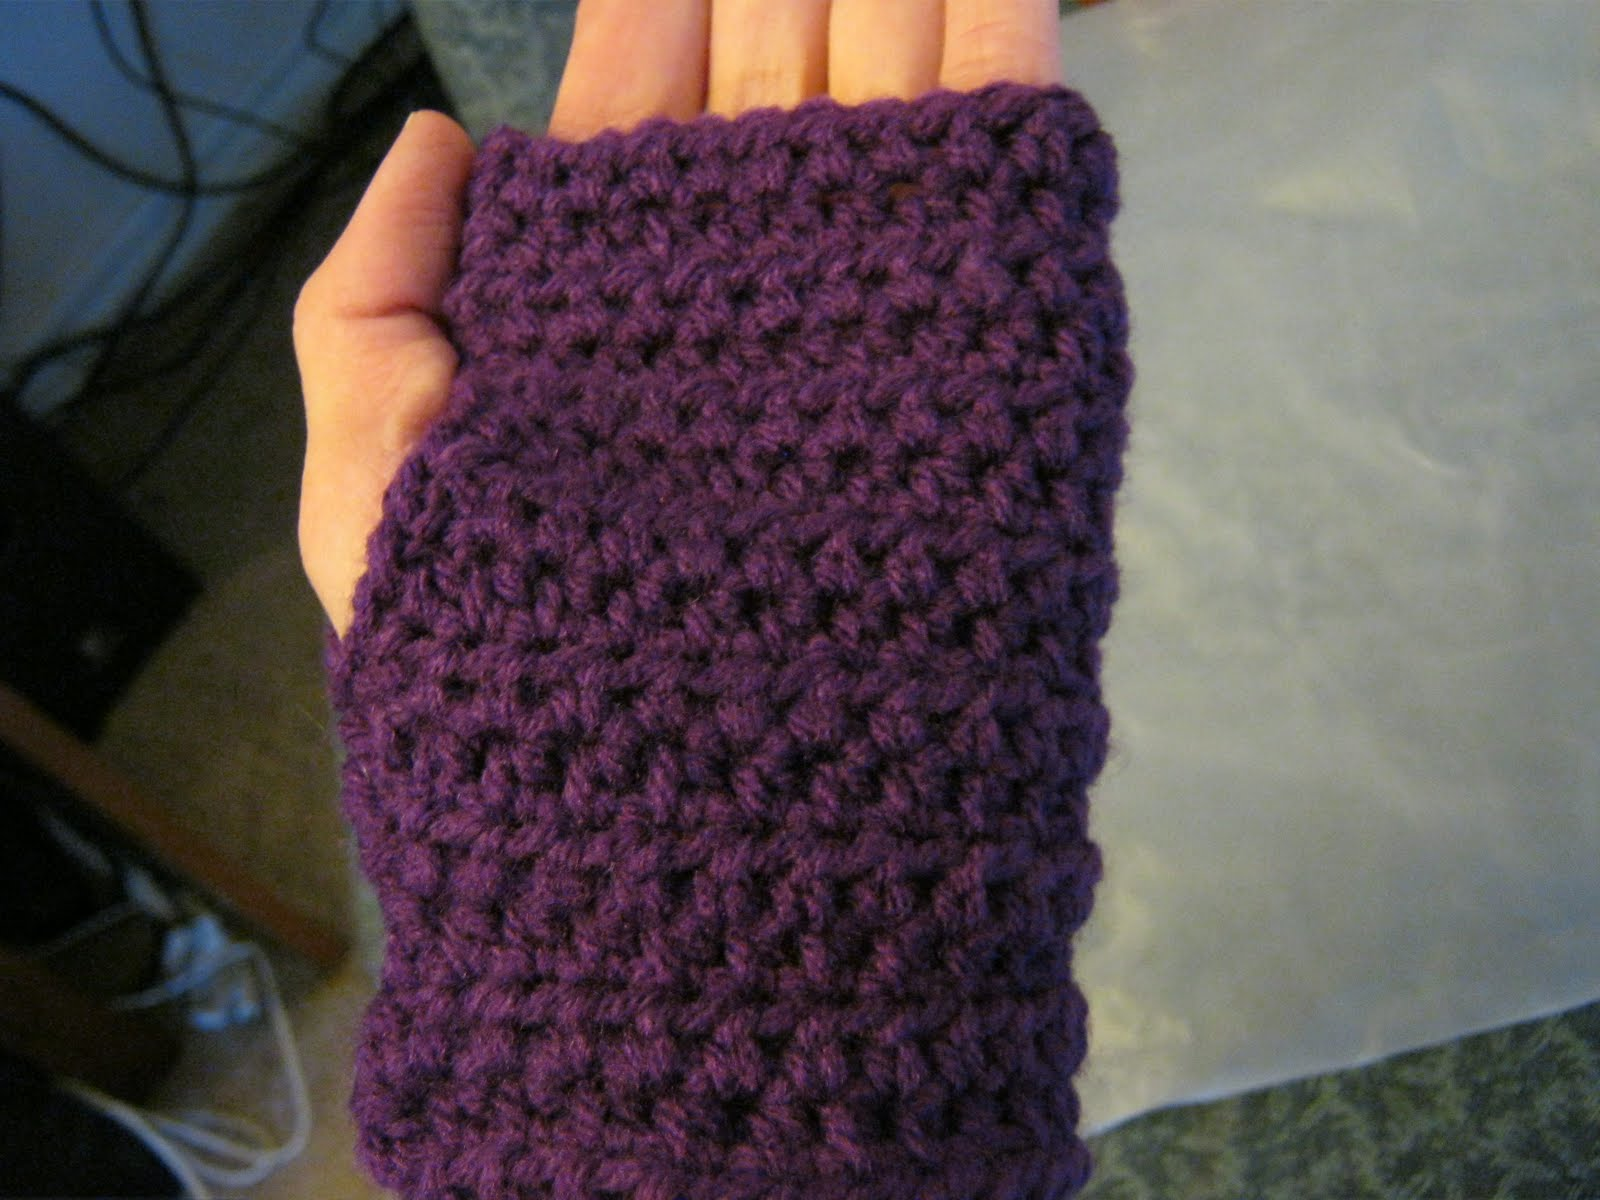 My Not-So-Secret Diary: Crochet wrist warmers